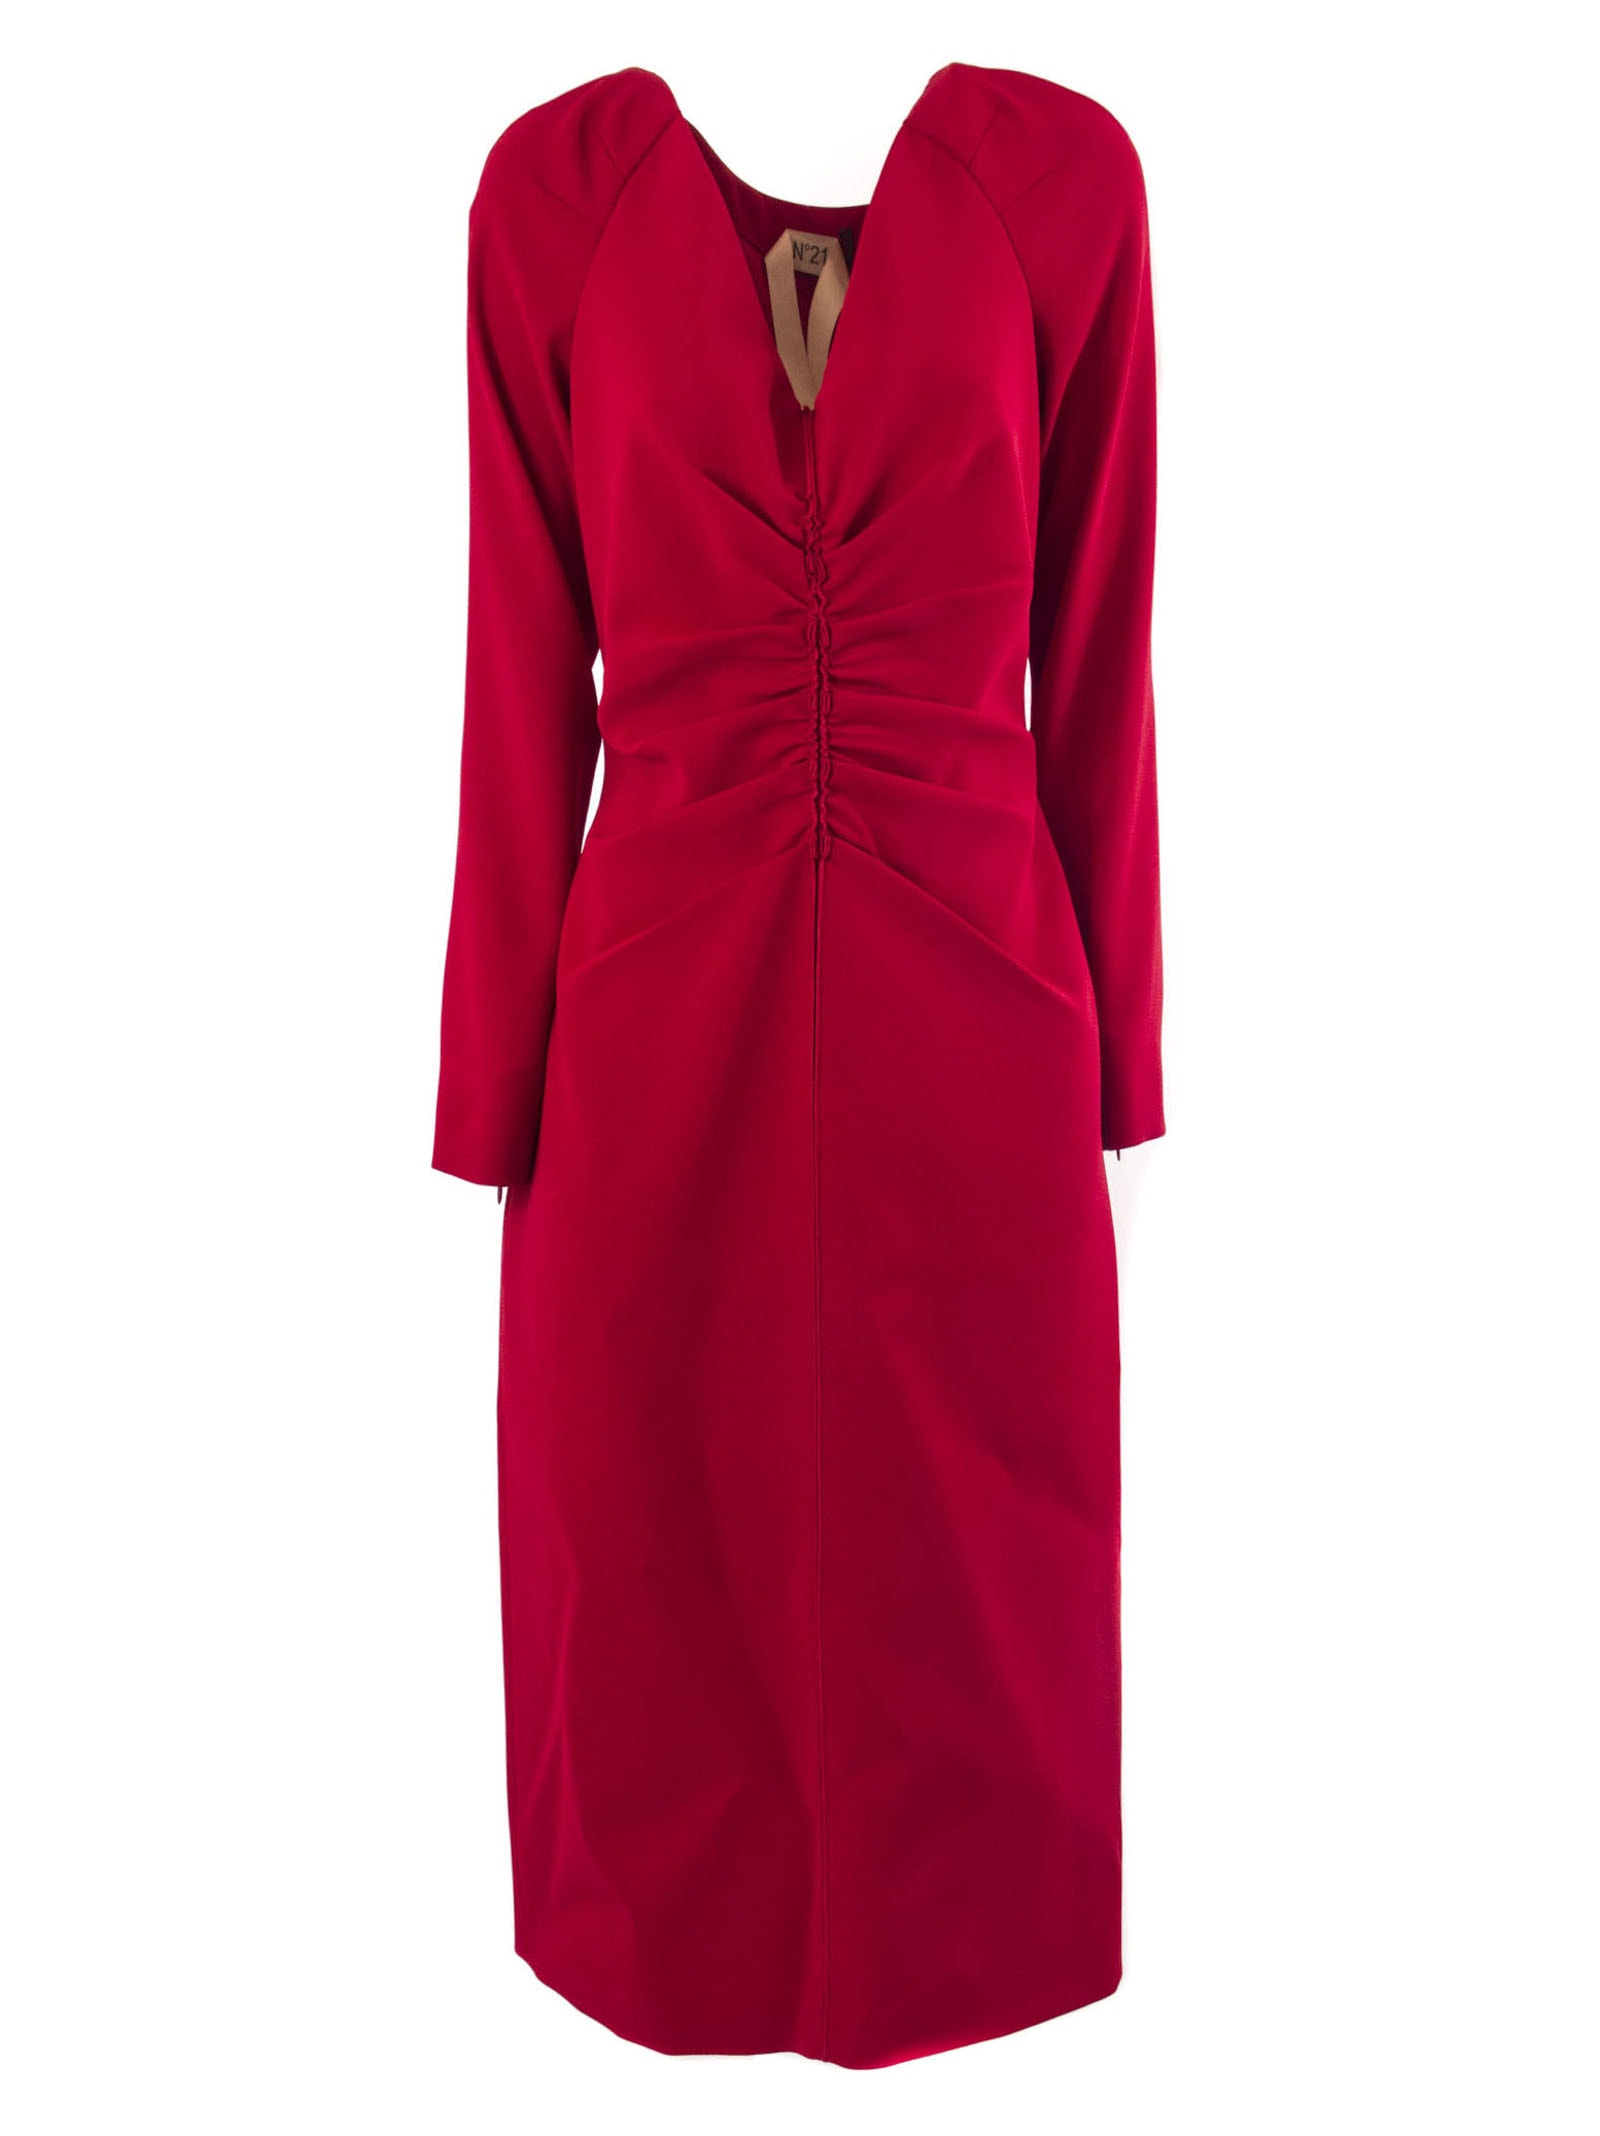 N.21 Long Dress In Red Fabric